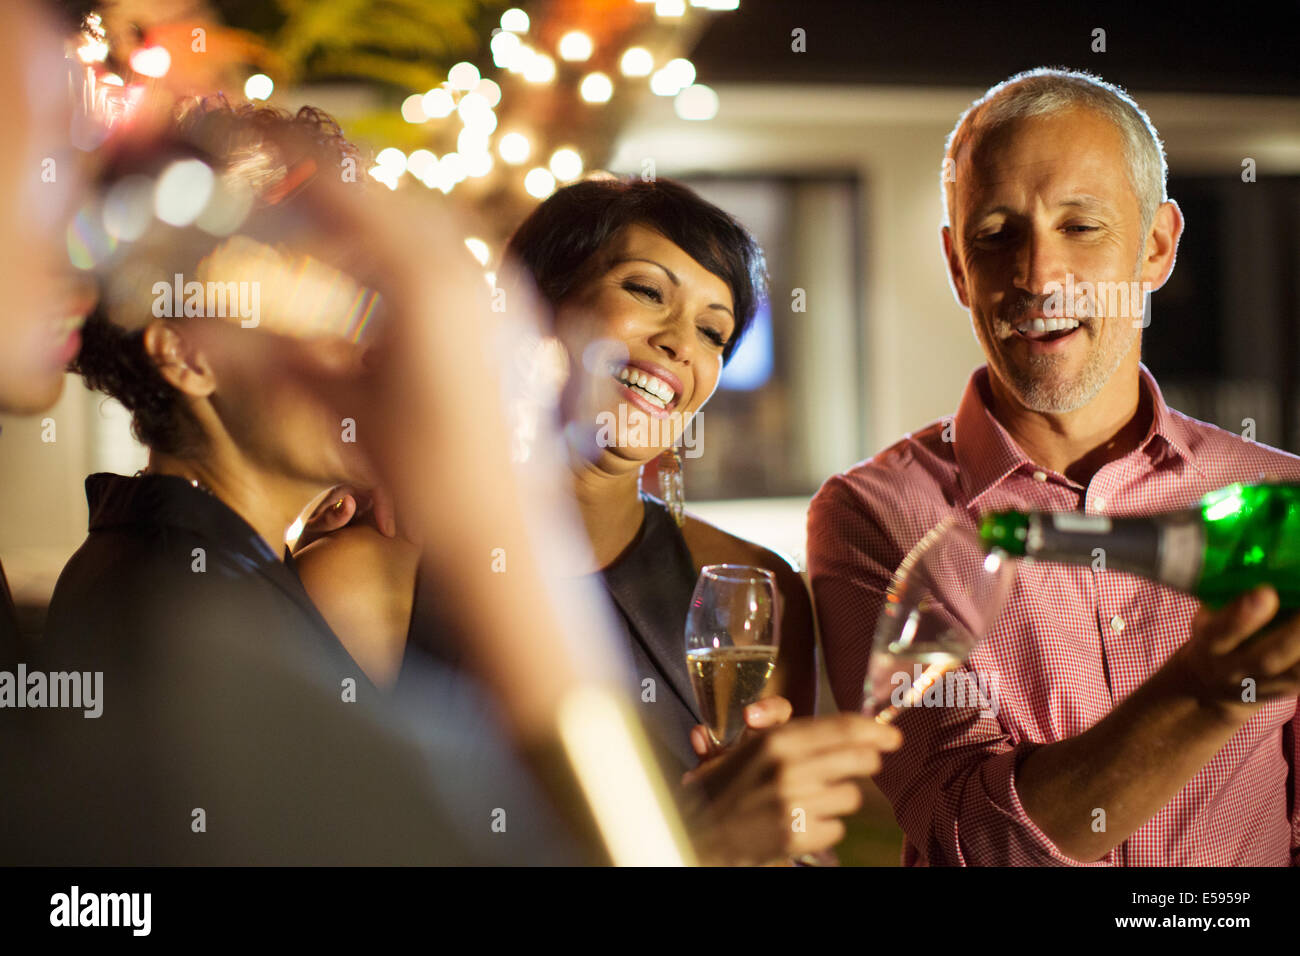 Friends drinking champagne at party - Stock Image